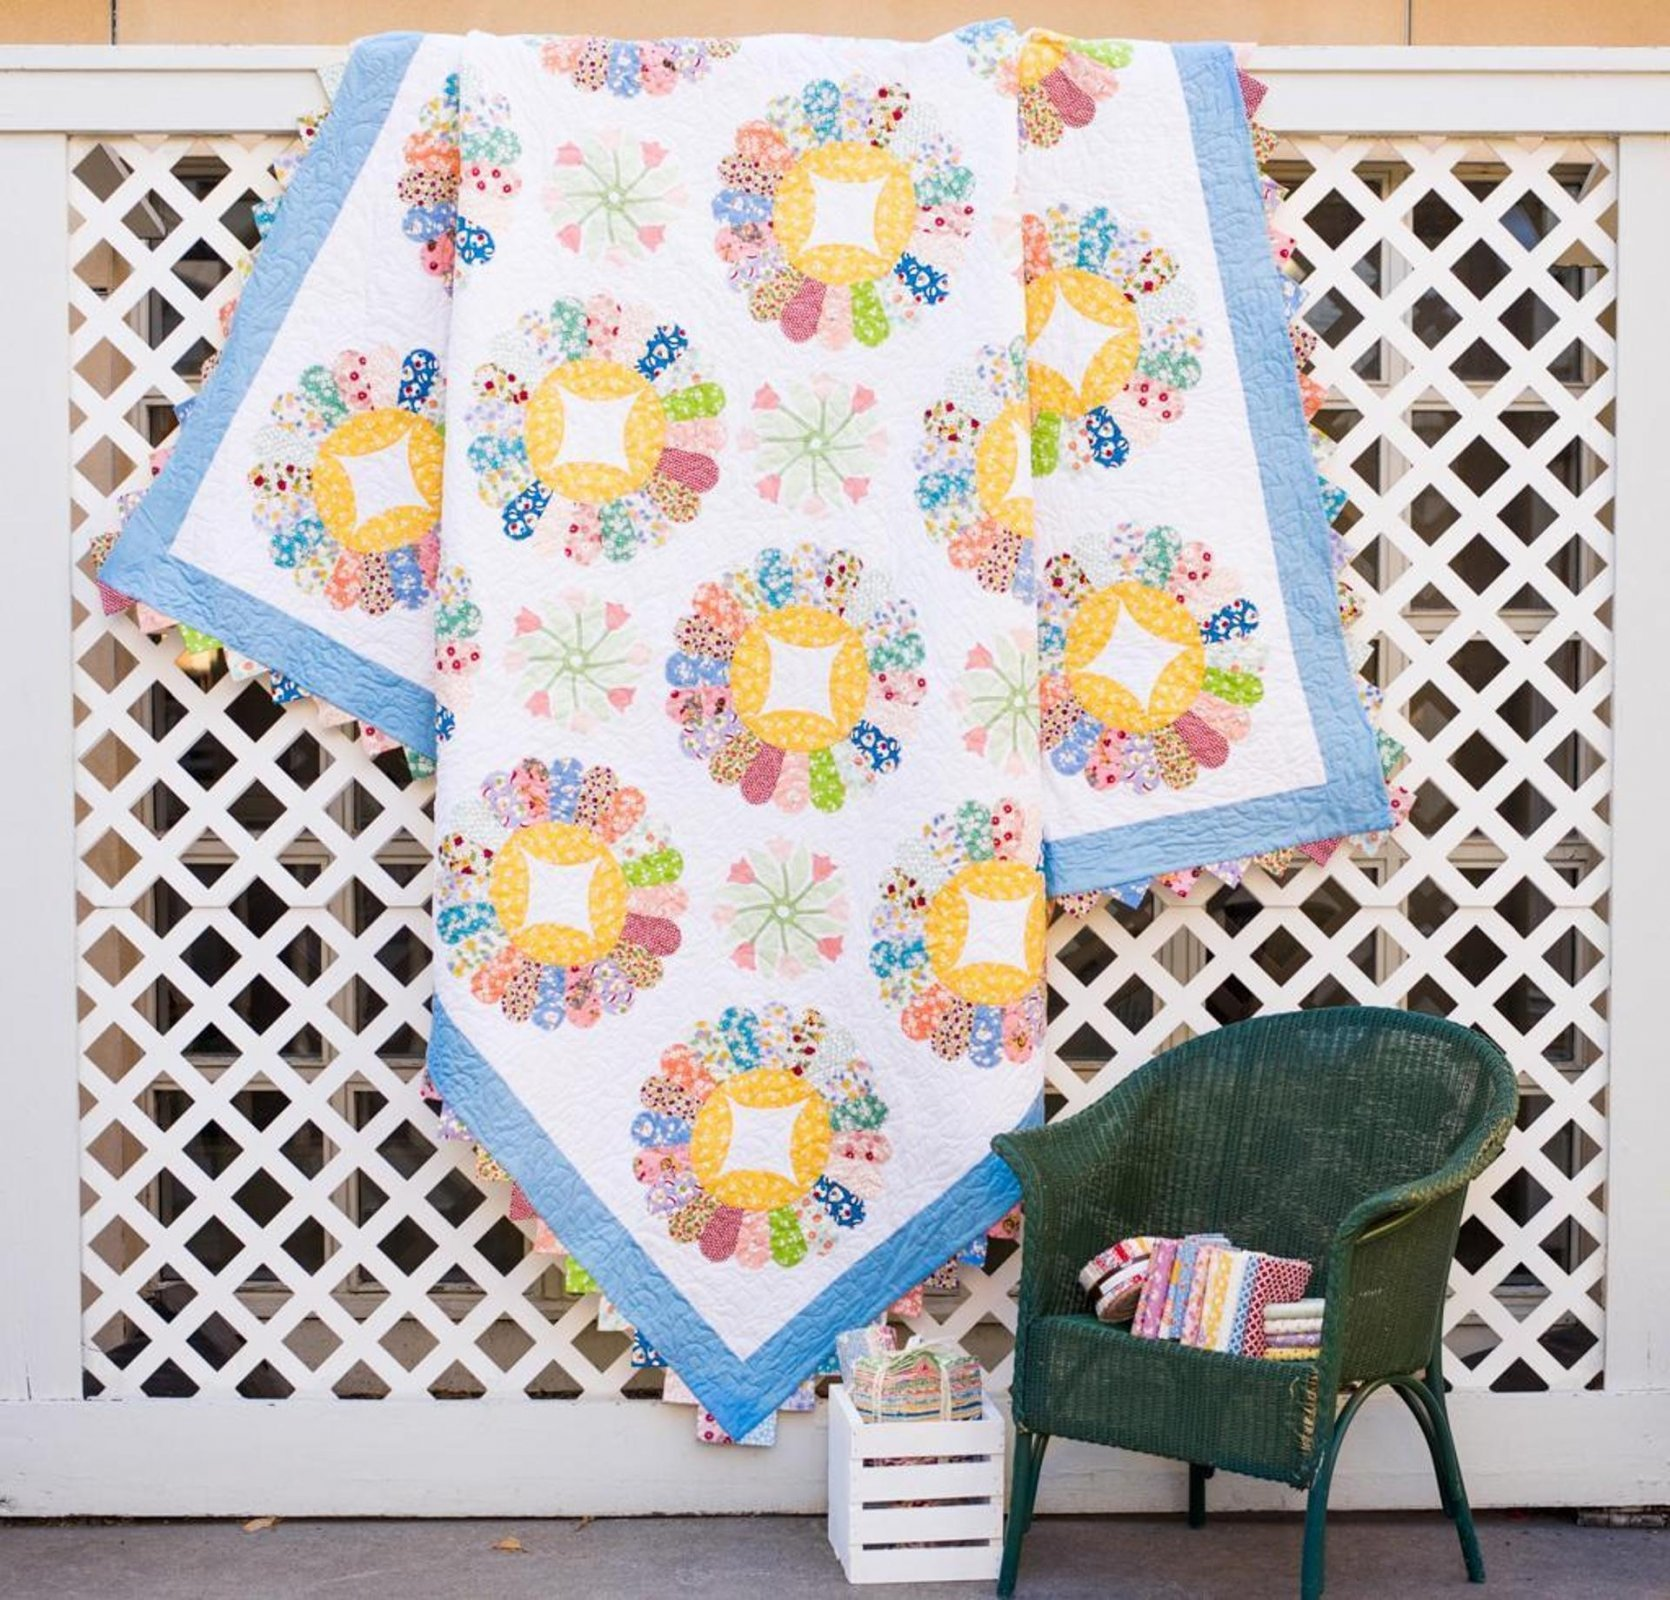 Candy Dish Quilt Kit Christine Stainbrook Rjr Everything But The